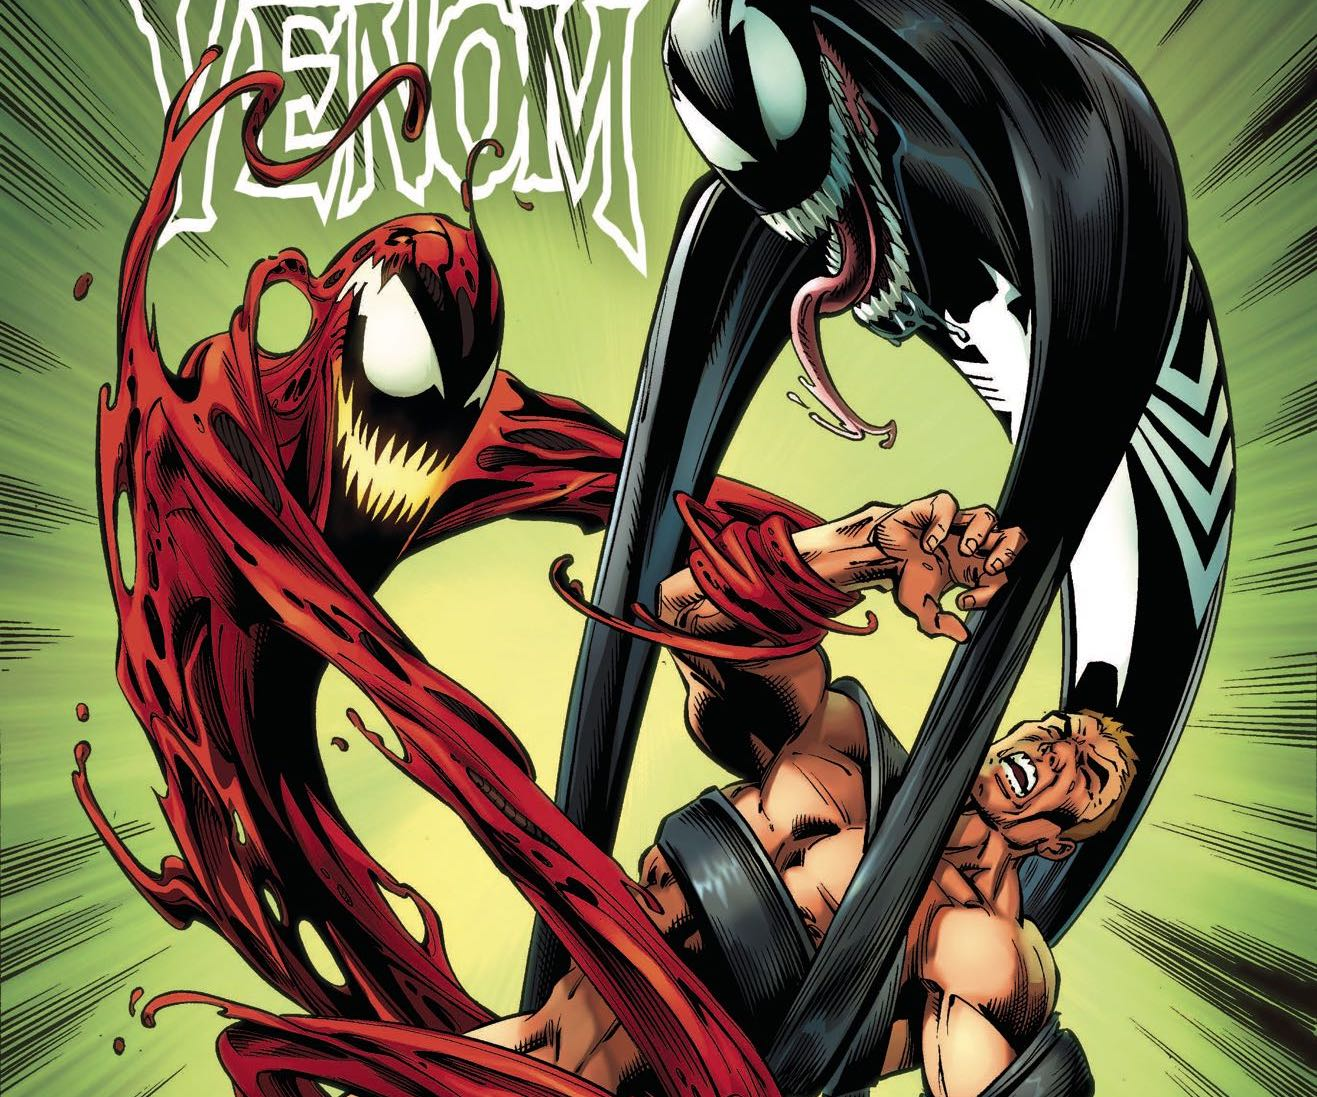 Venom #24 Review